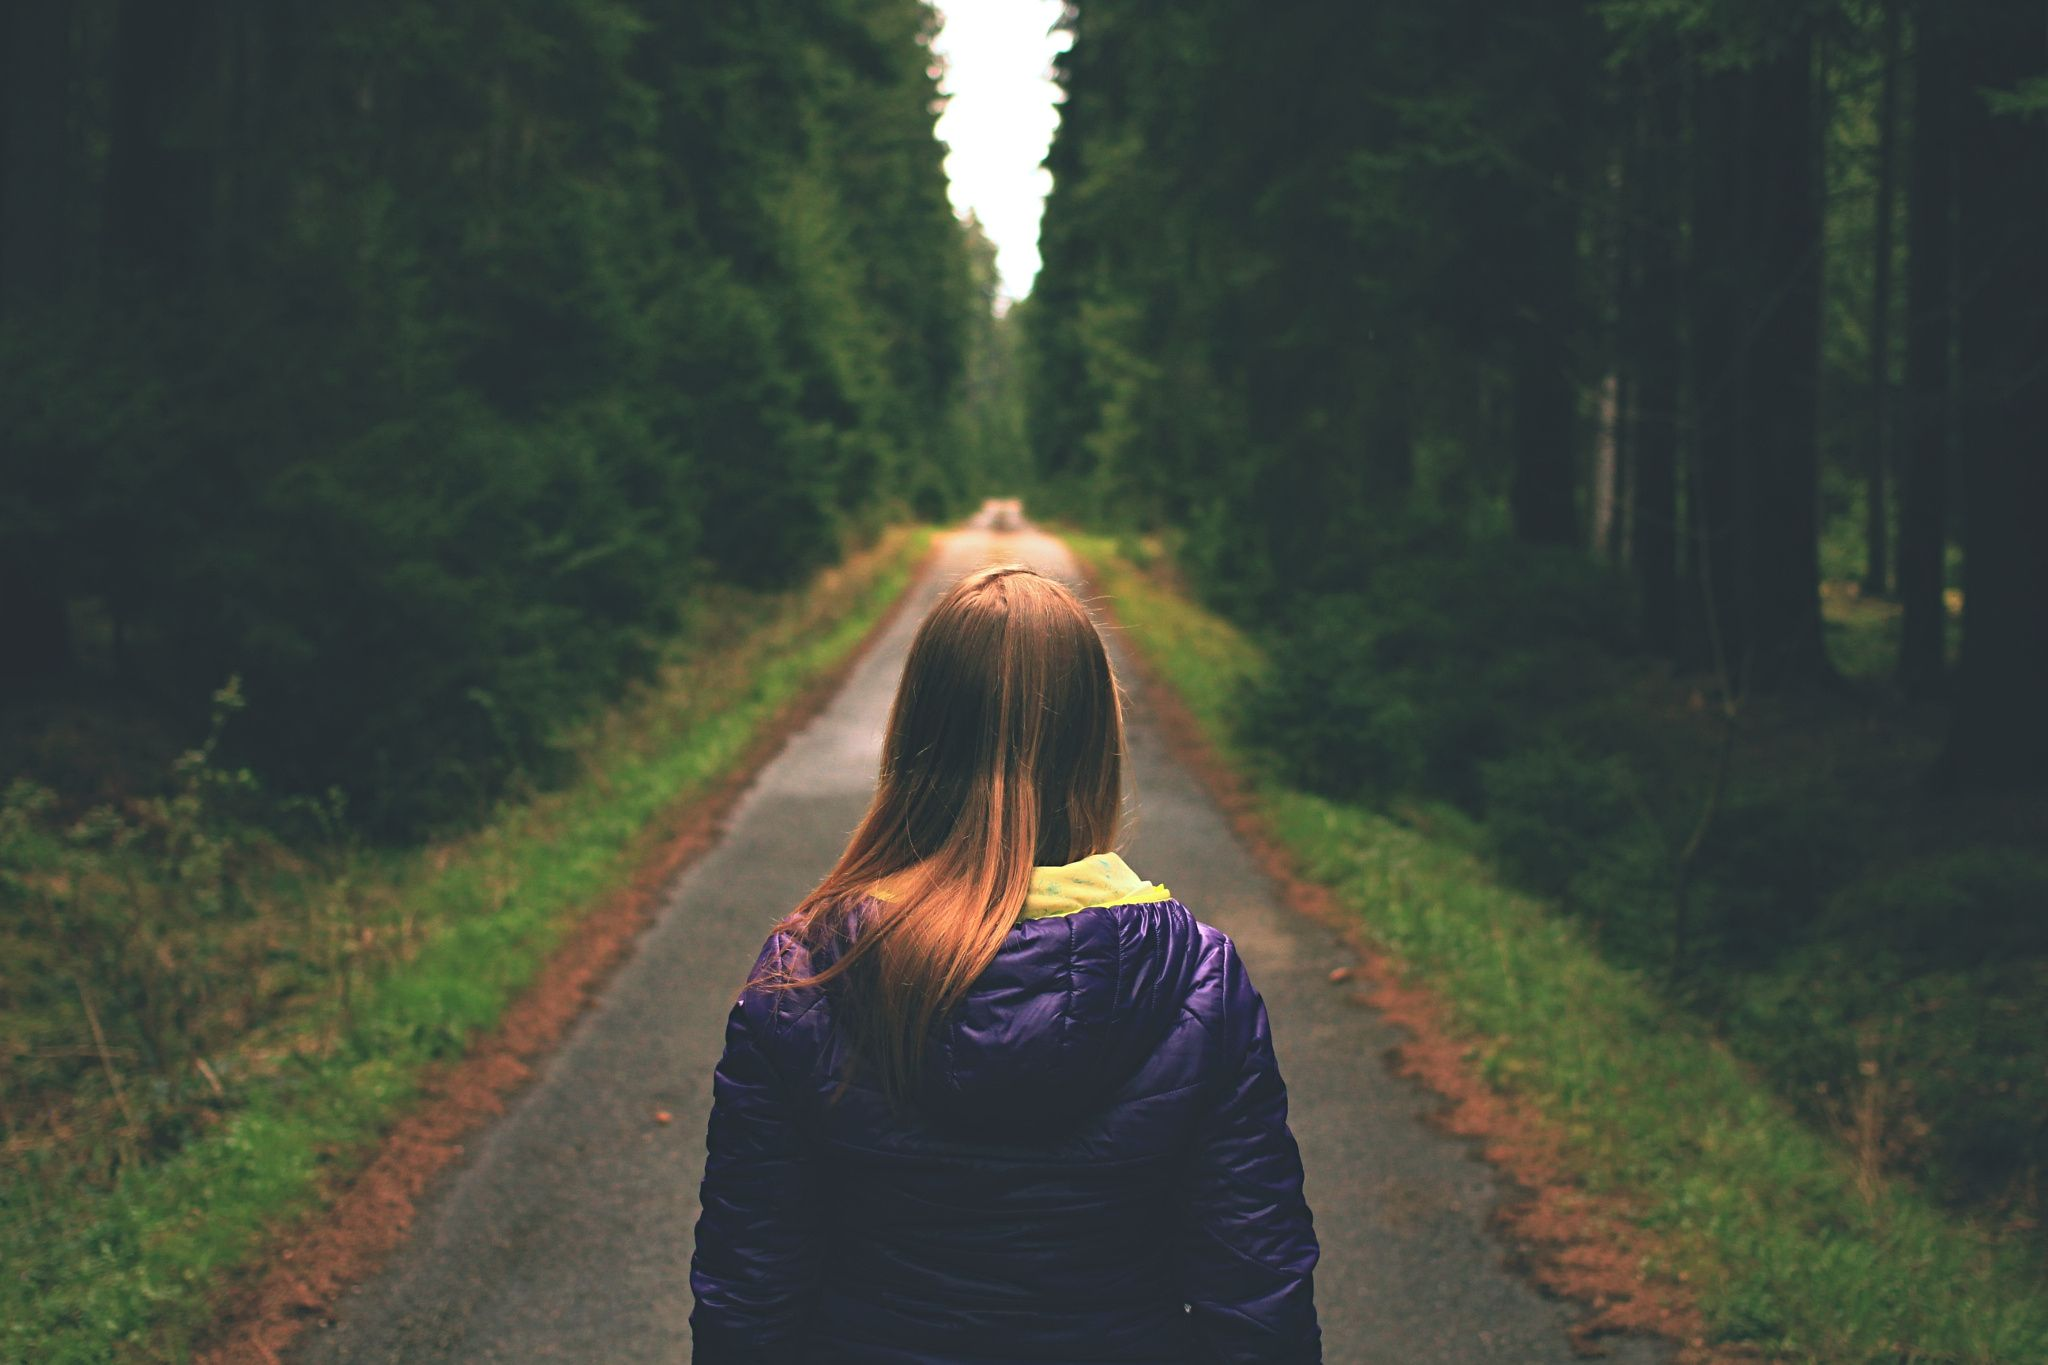 Woman traveler alone in forest. - Woman traveler standing alone in forest. Follow another way and deep breathing.